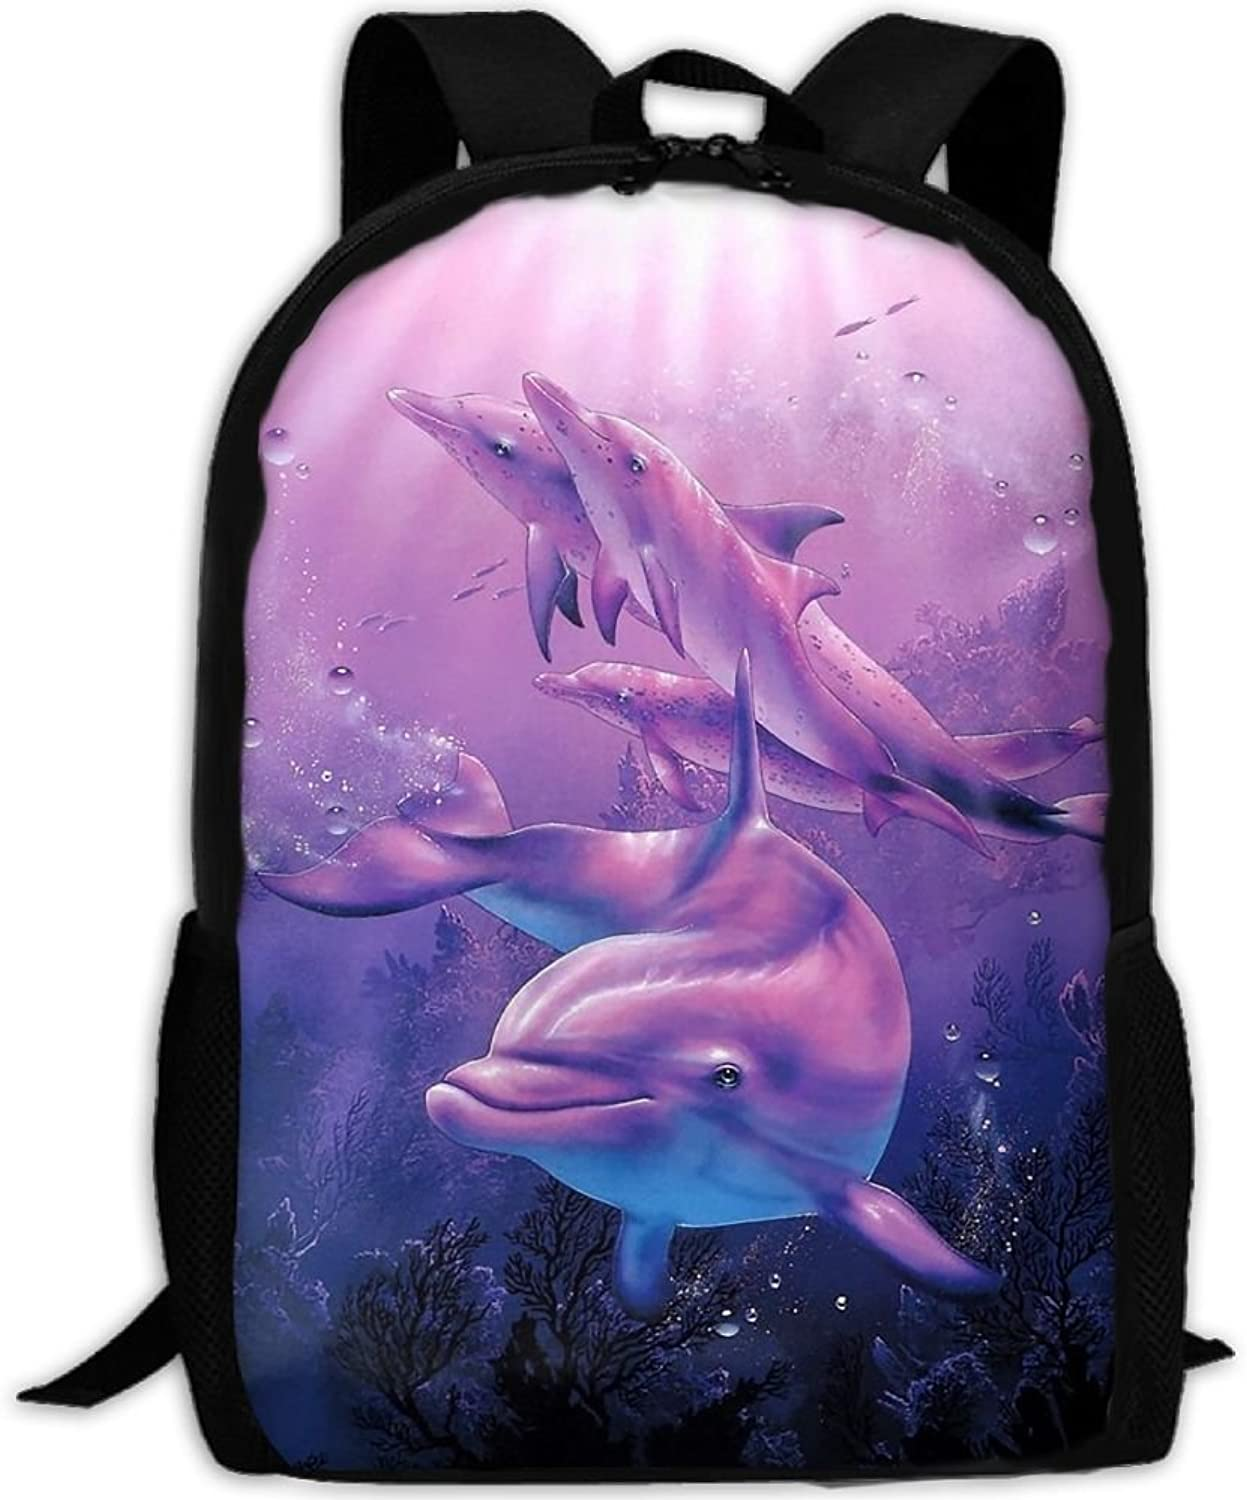 Backpack Laptop Travel Hiking School Bags Dolphin Cartoon Daypack Shoulder Bag